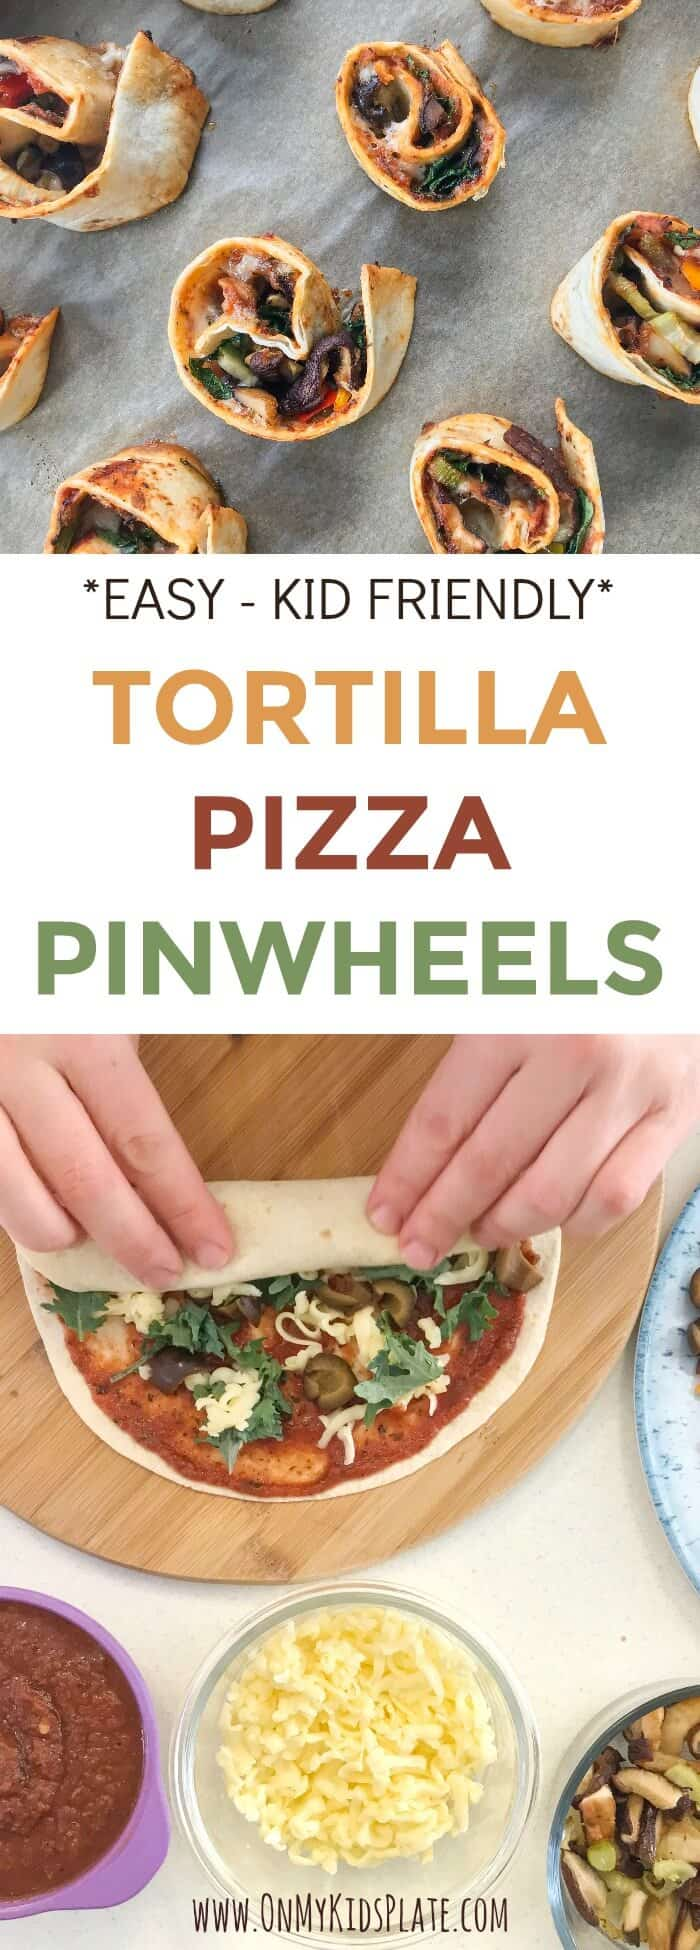 A person\'s hands wrapping a tortilla filled with pizza ingredients with text title overlay